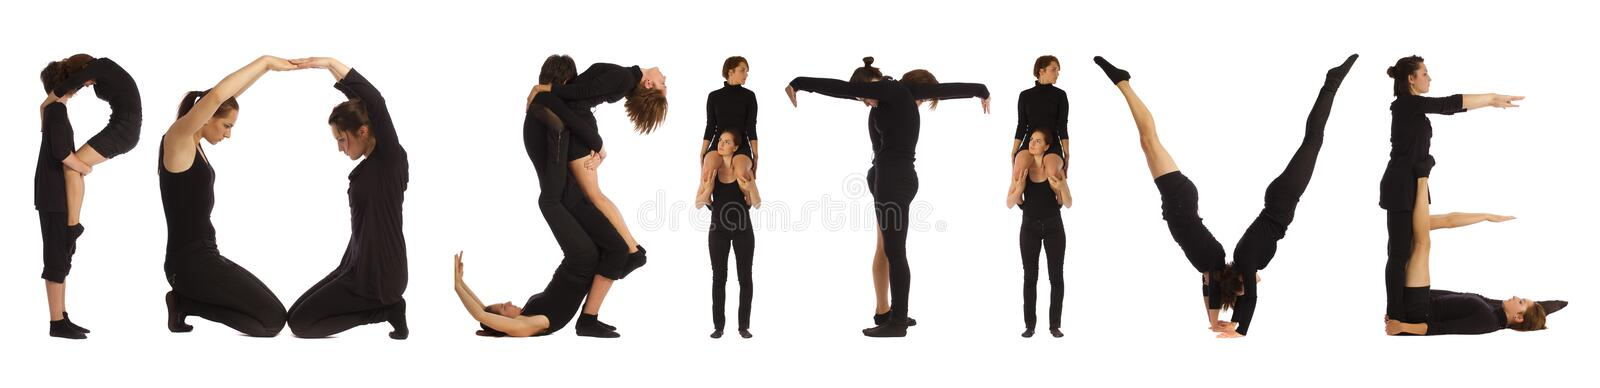 Black dressed people forming POSITIVE word stock photo